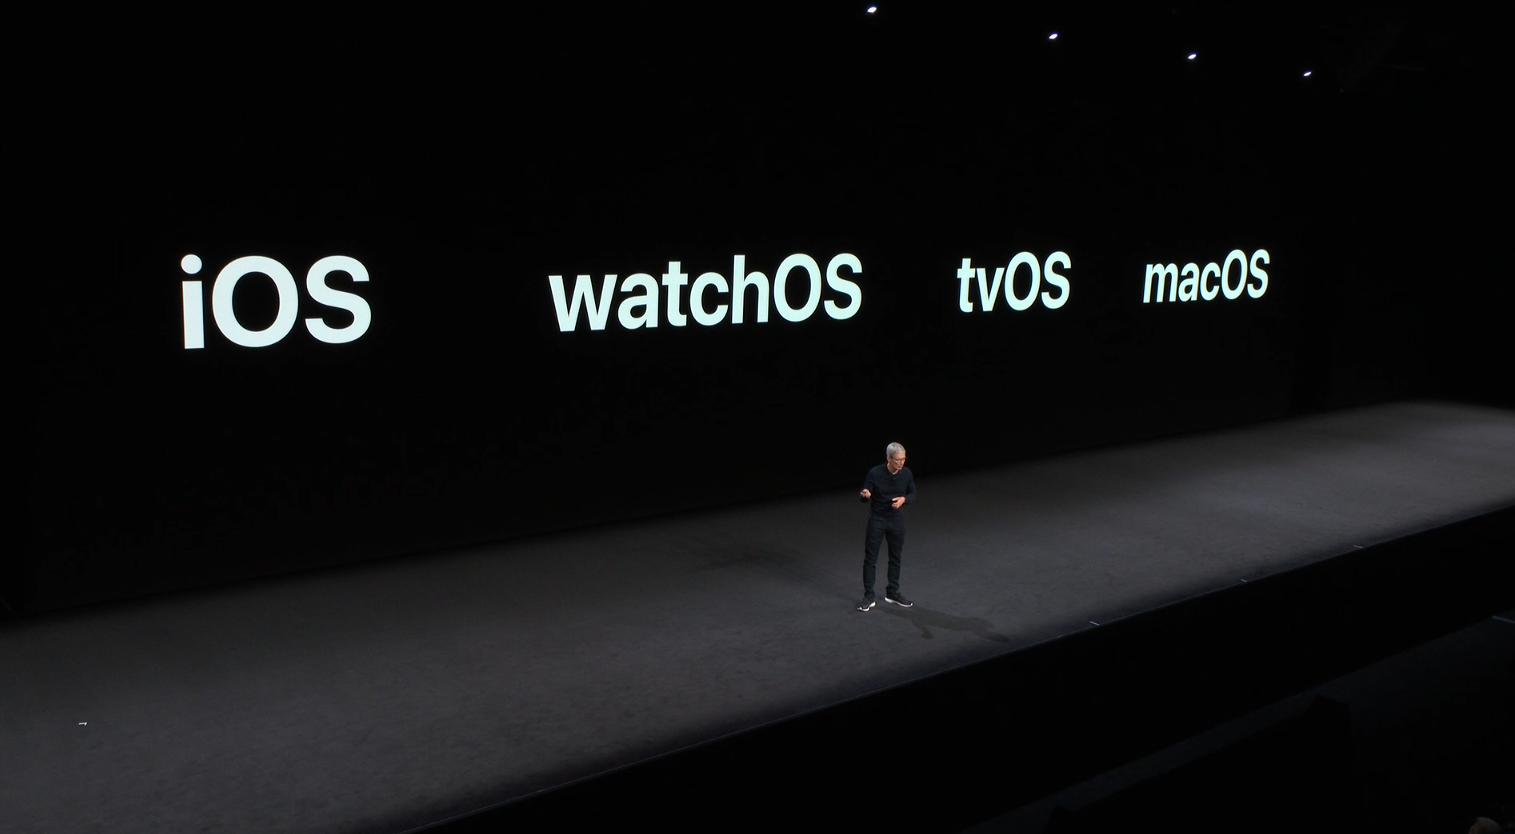 wwdc2018-OSs.png